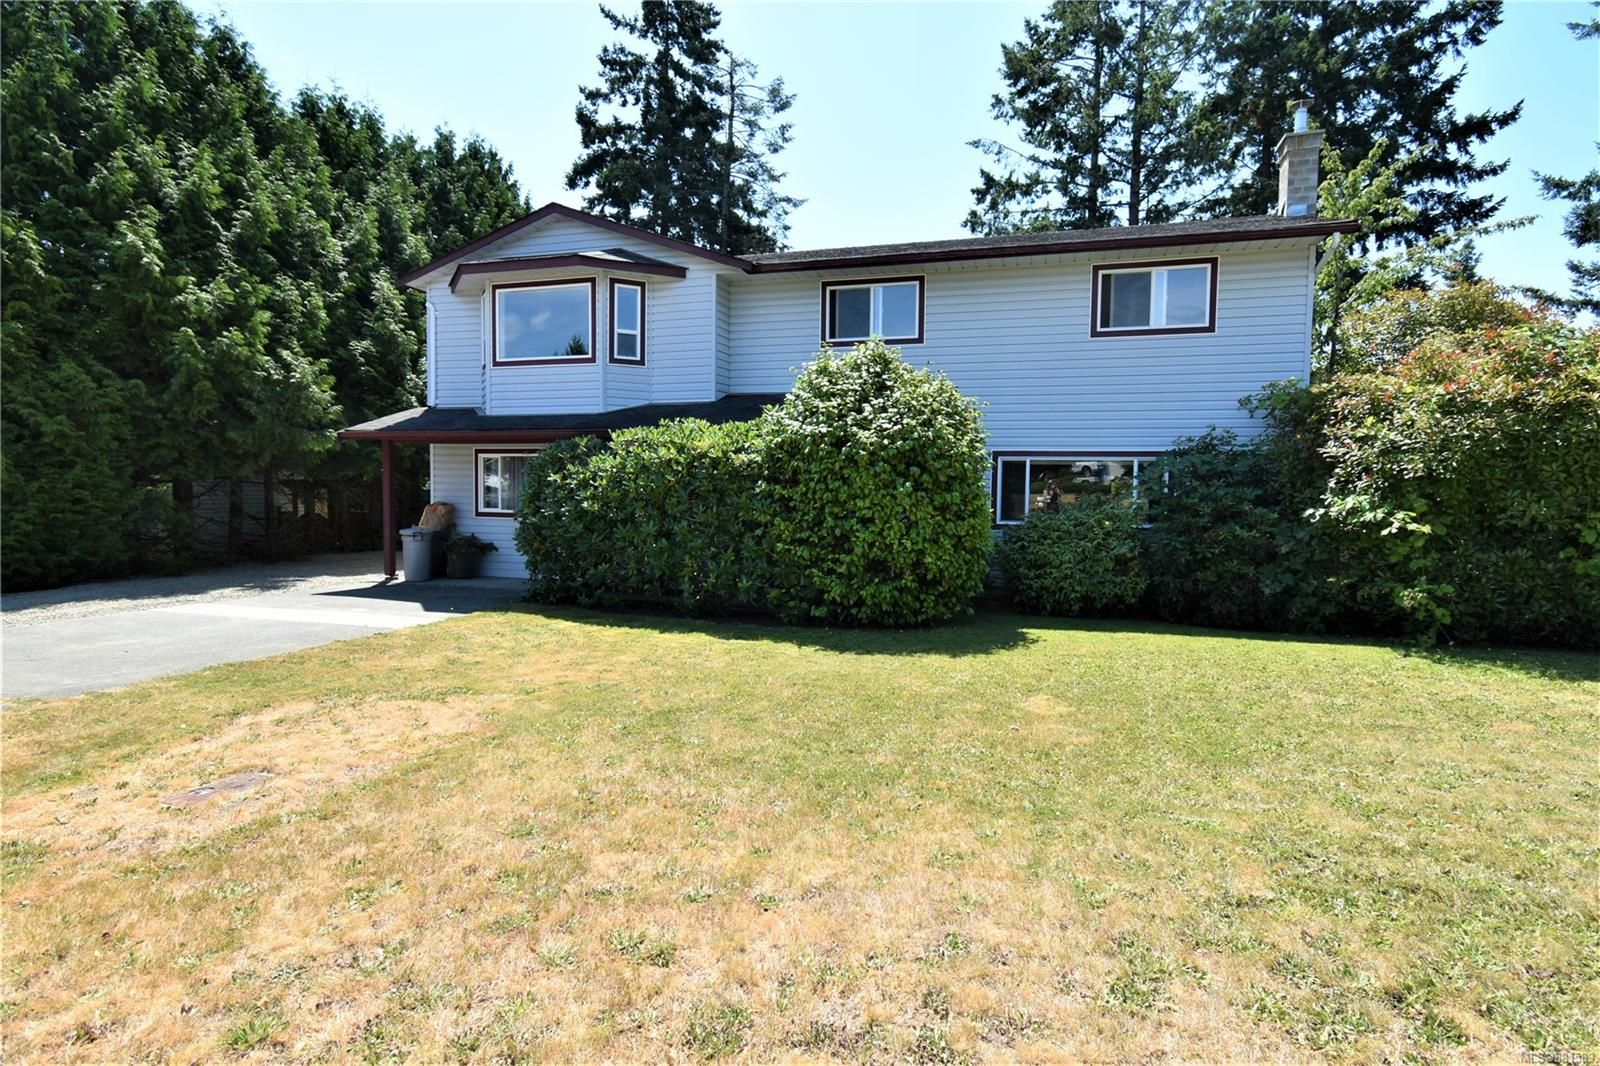 Main Photo: 2035 Bolt Ave in : CV Comox (Town of) House for sale (Comox Valley)  : MLS®# 881583